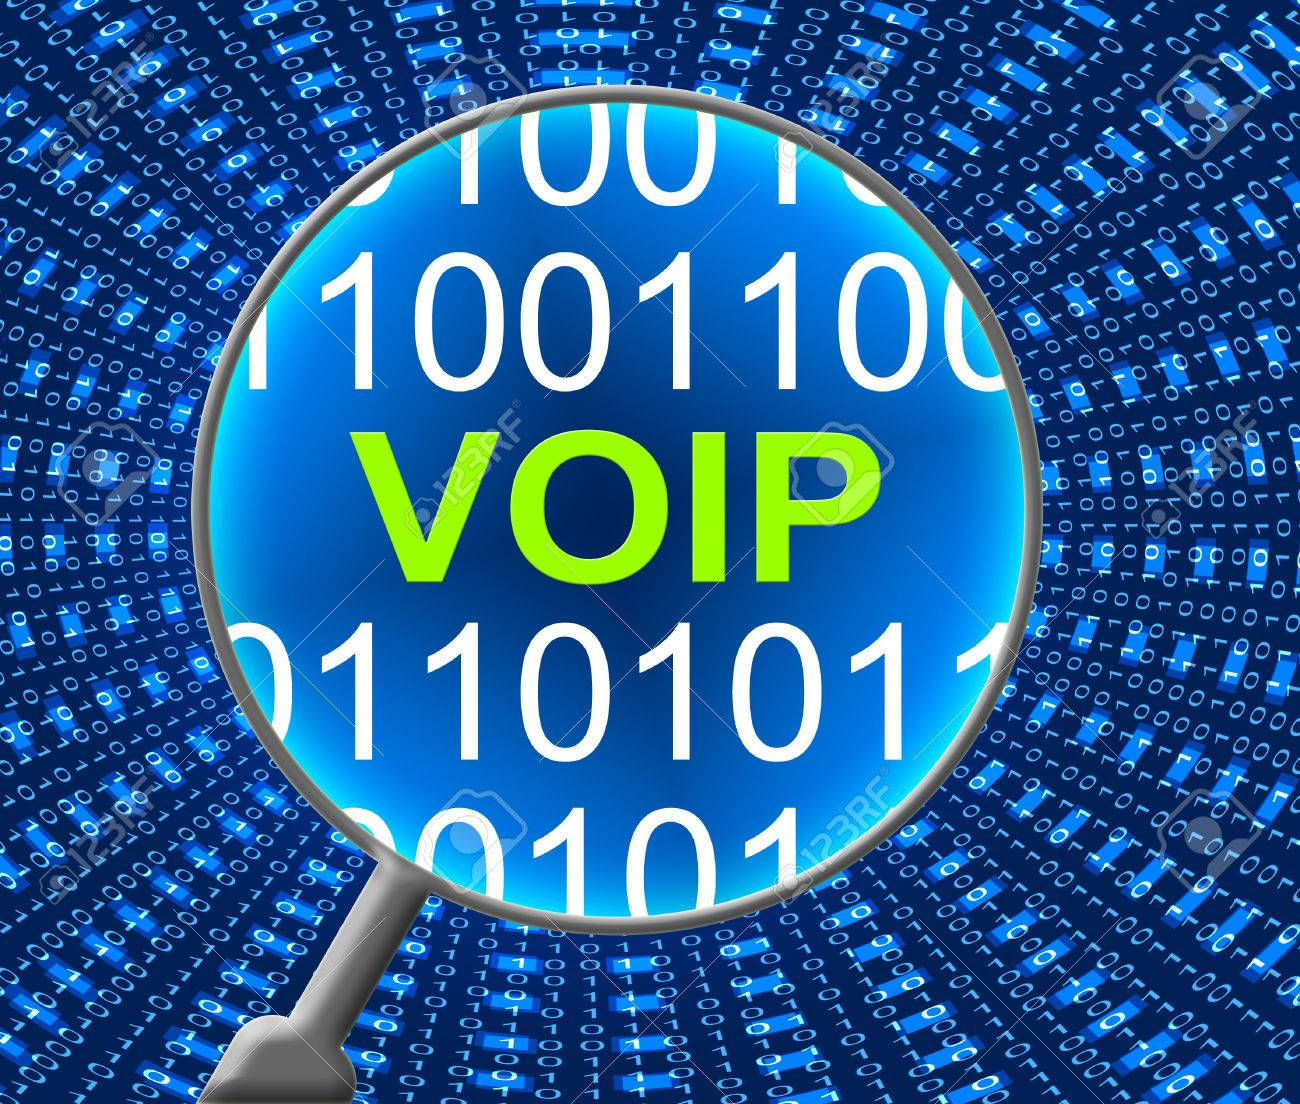 Voip Online Showing Voice Over Broadband And Voice Over Broadband